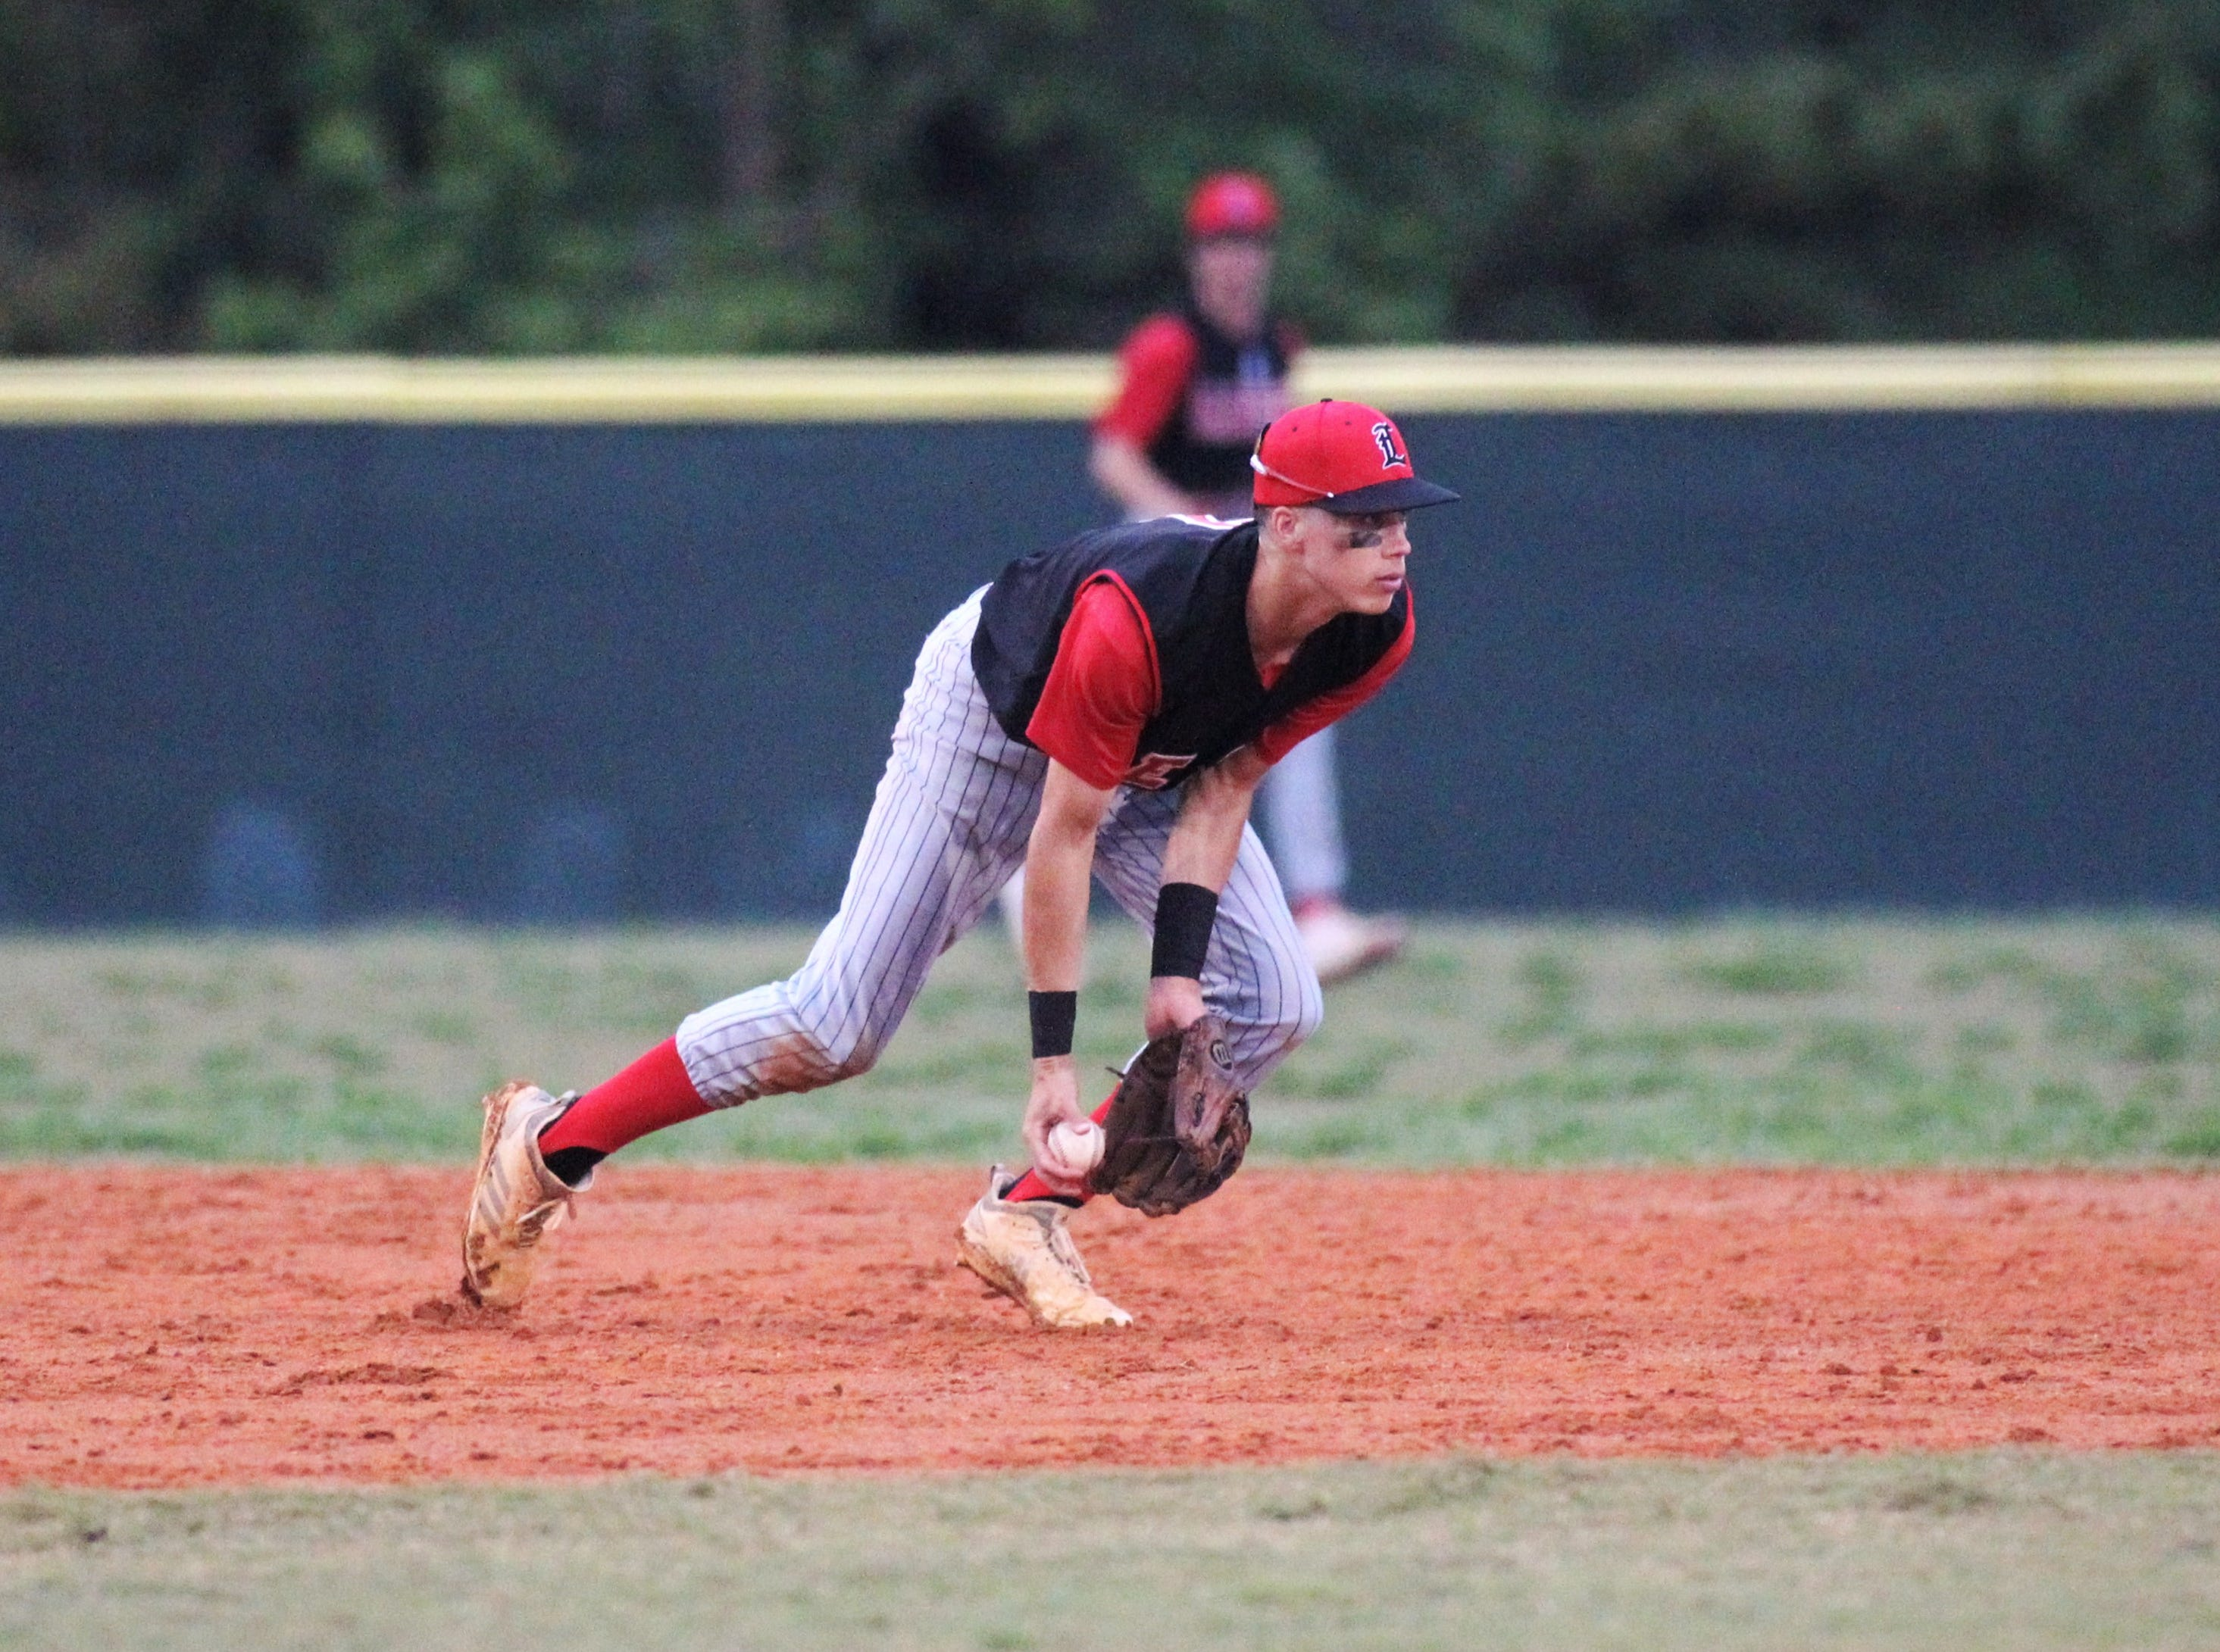 Leon shortstop True Fontenot flips to second to start a double play as Chiles won an 11-6 home game against Leon on Friday, April 5, 2019, to force a season split. The Lions won 3-0 earlier in the week.